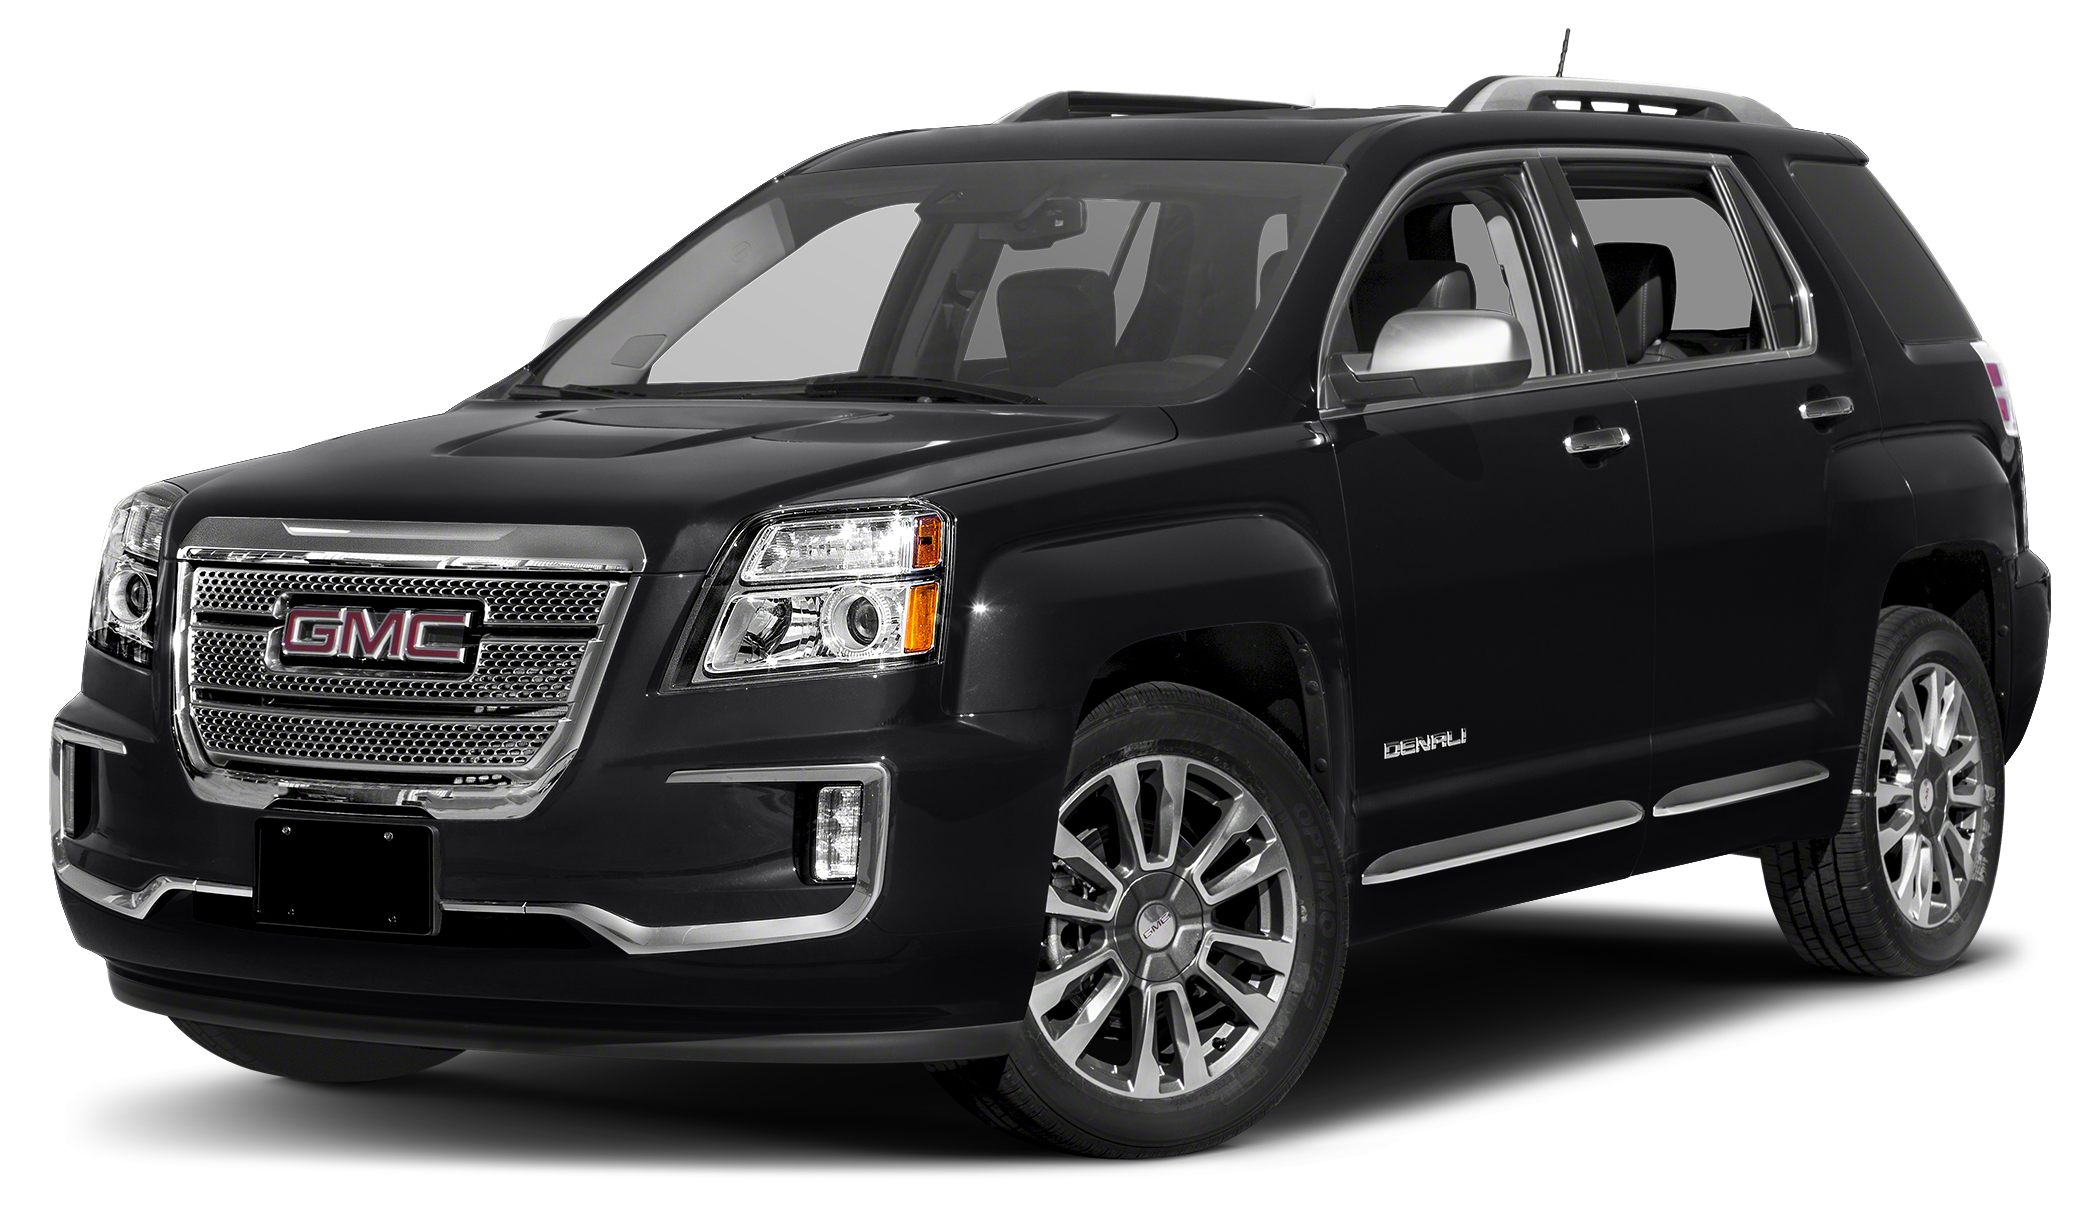 2016 GMC Terrain Denali Navigation Heated Leather Seats Moonroof All Wheel Drive Trailer Hitch